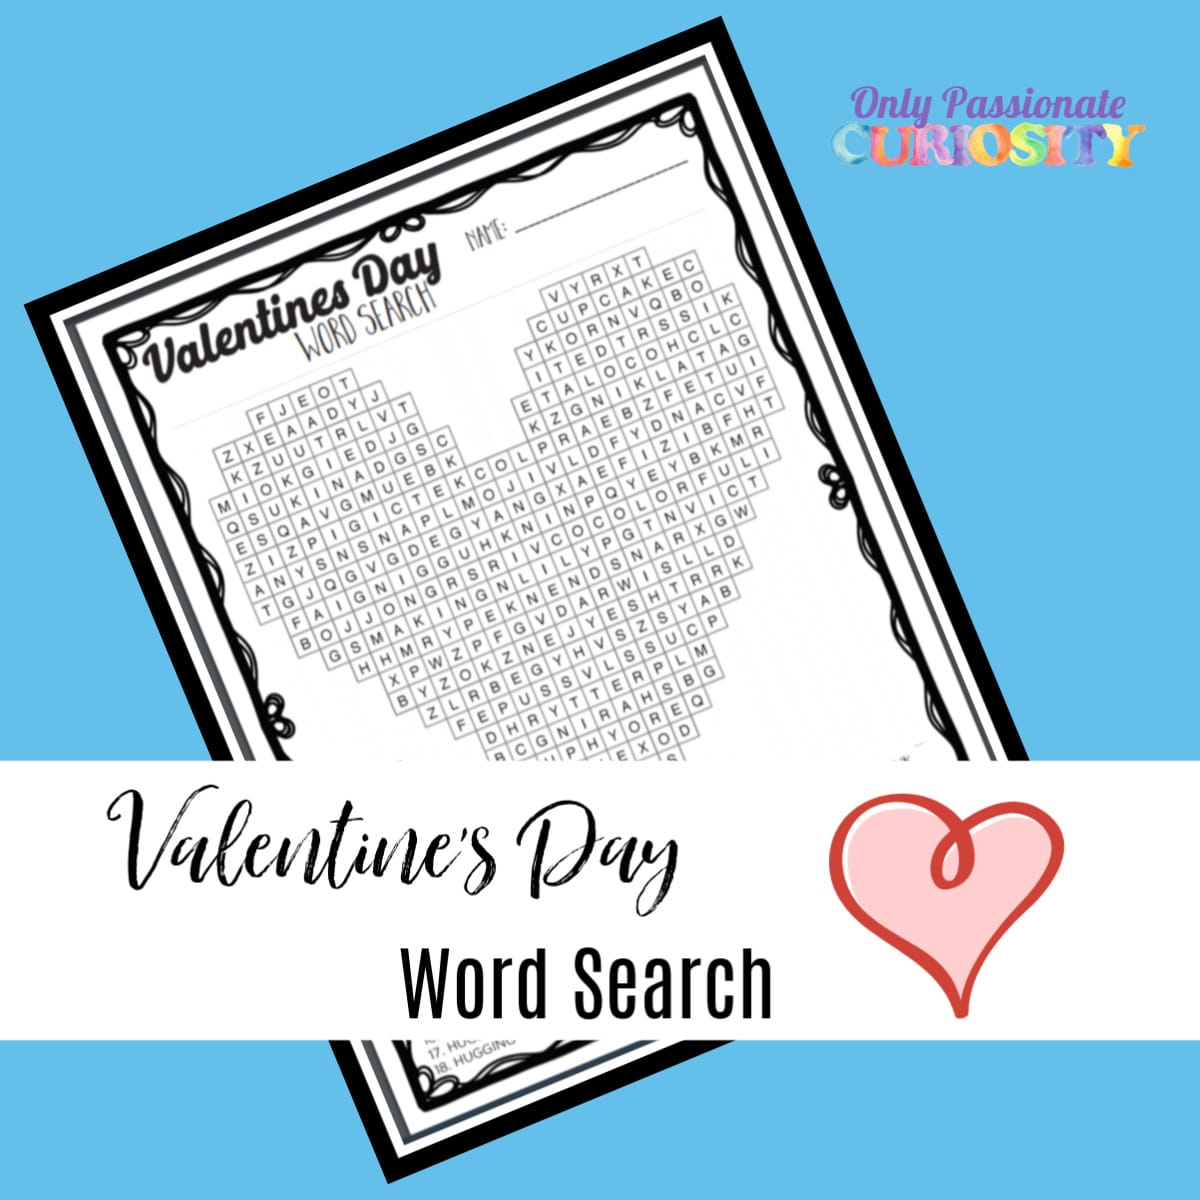 word search for Valentine's Day